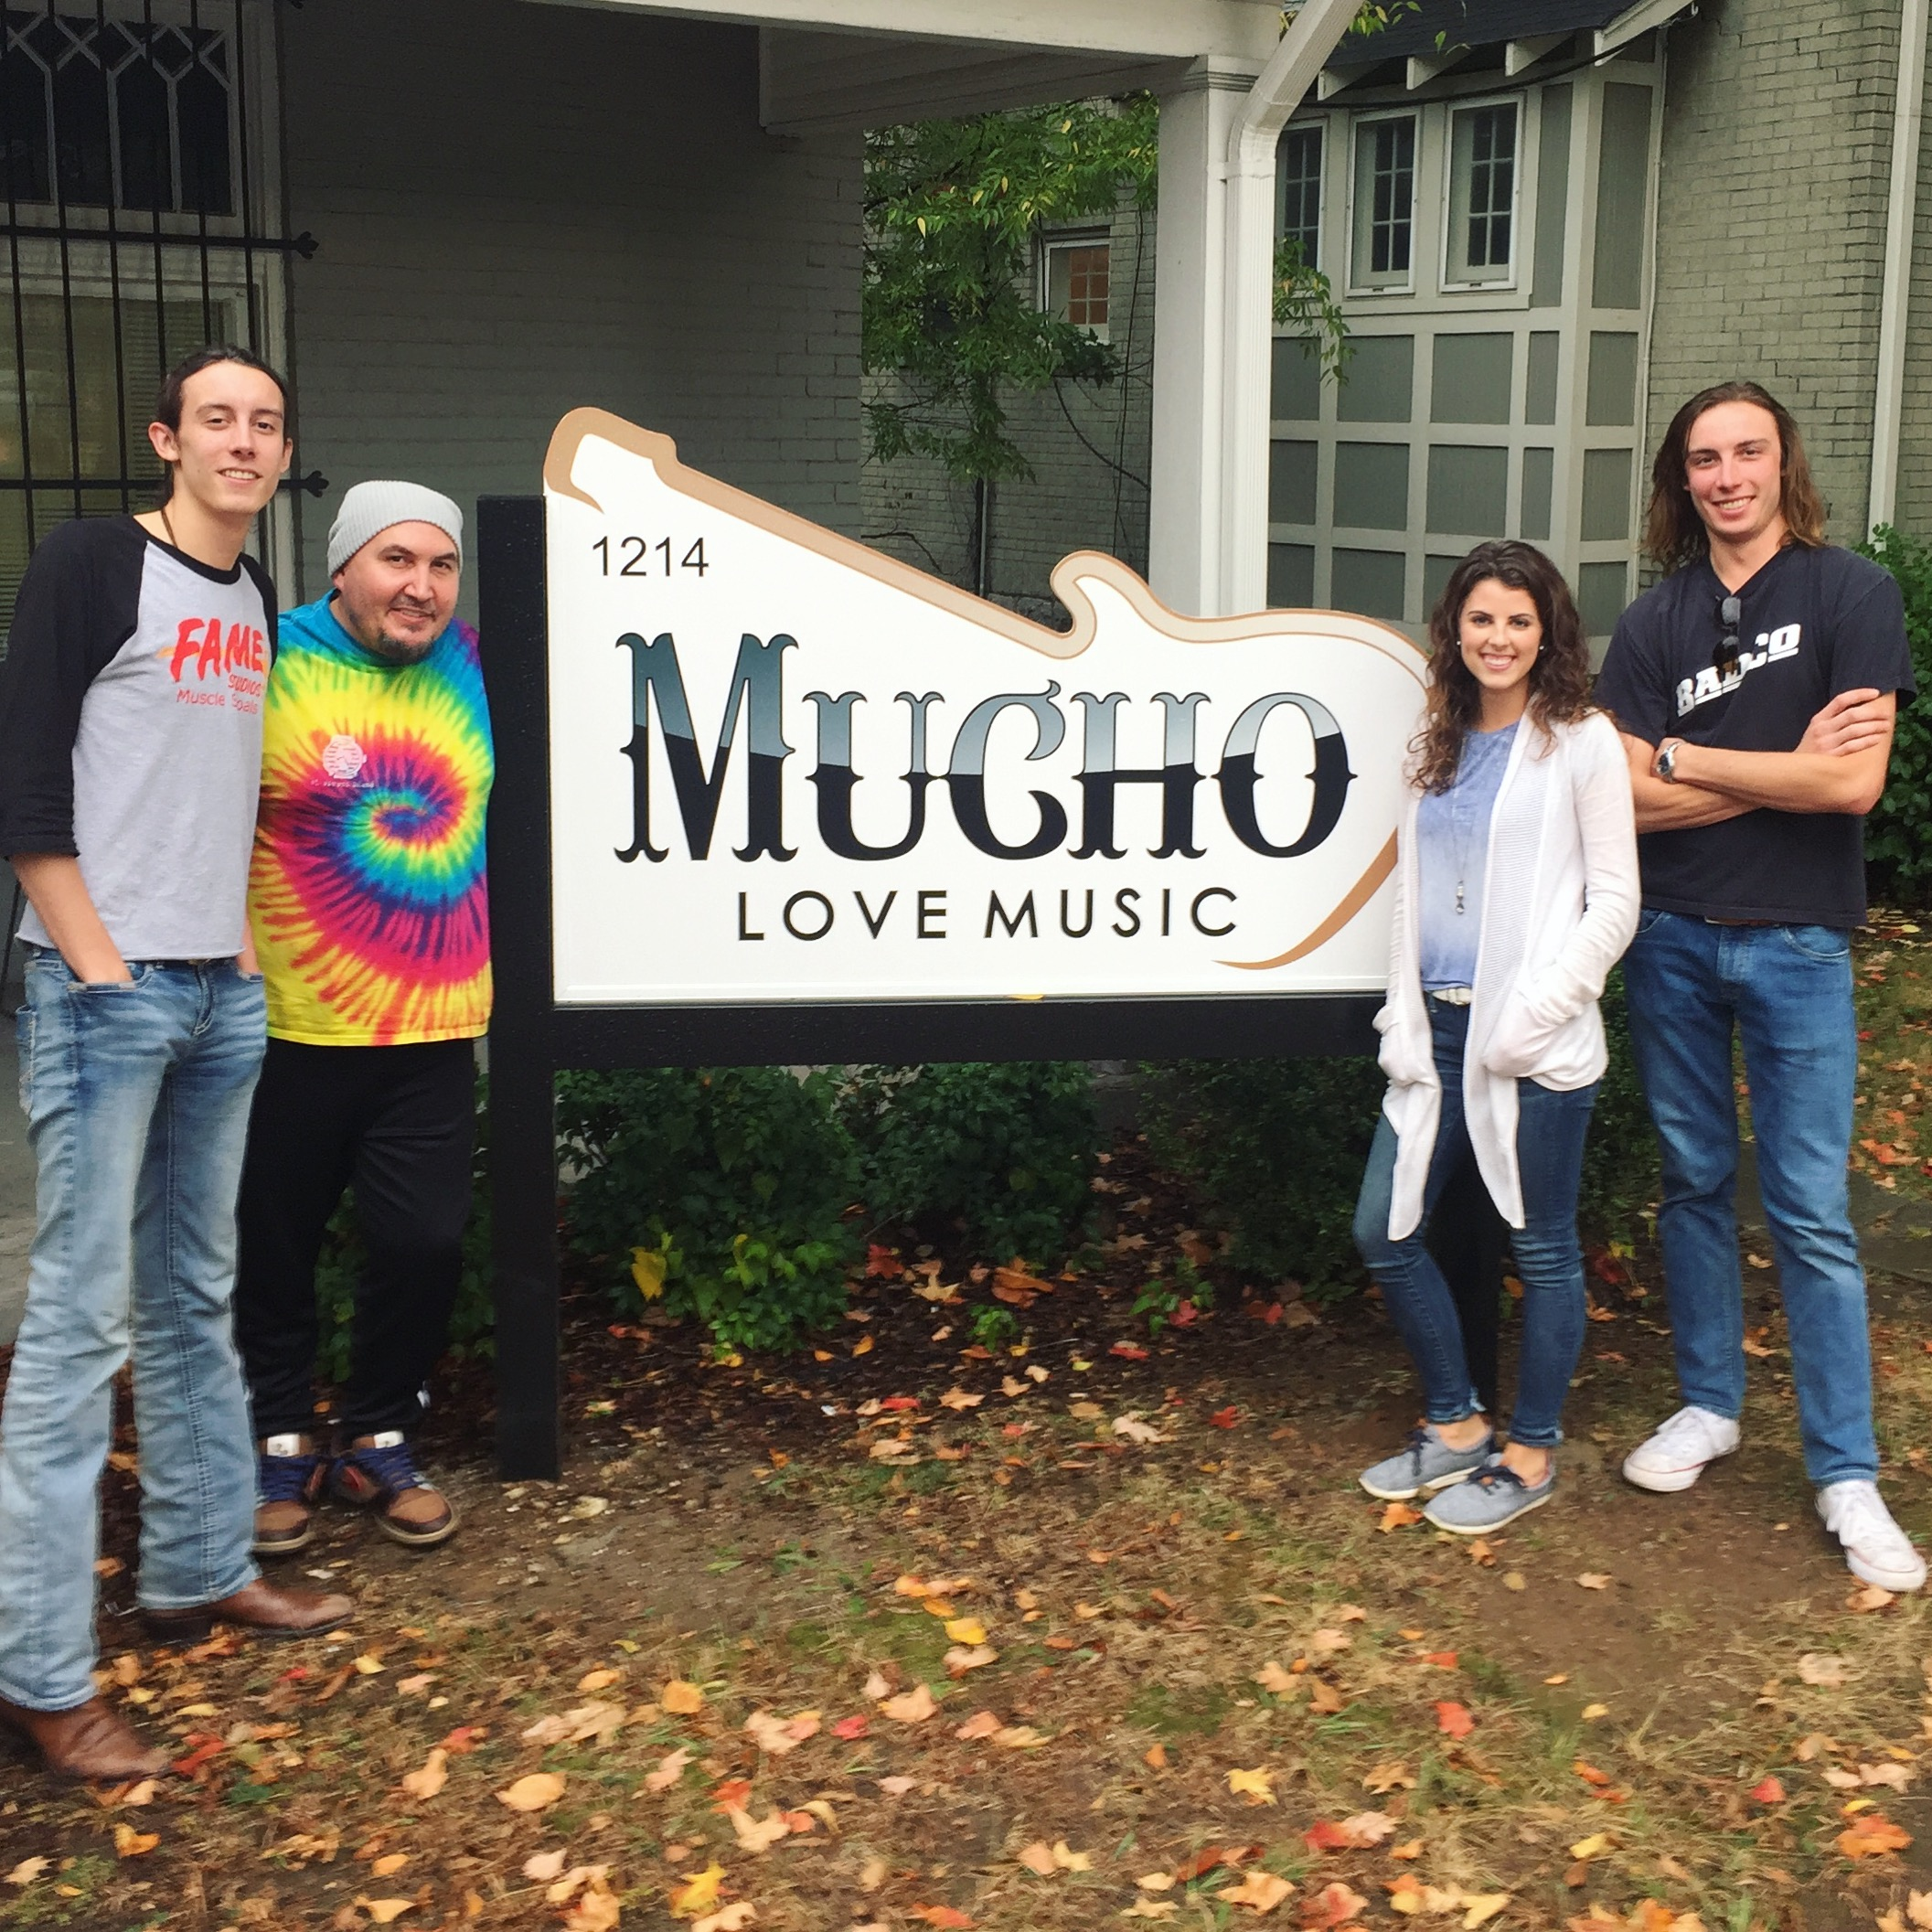 L-R: Kevin Nolan, Mark McGuinn, Lexi, and Matt Nolan after their write at Mucho Love Music